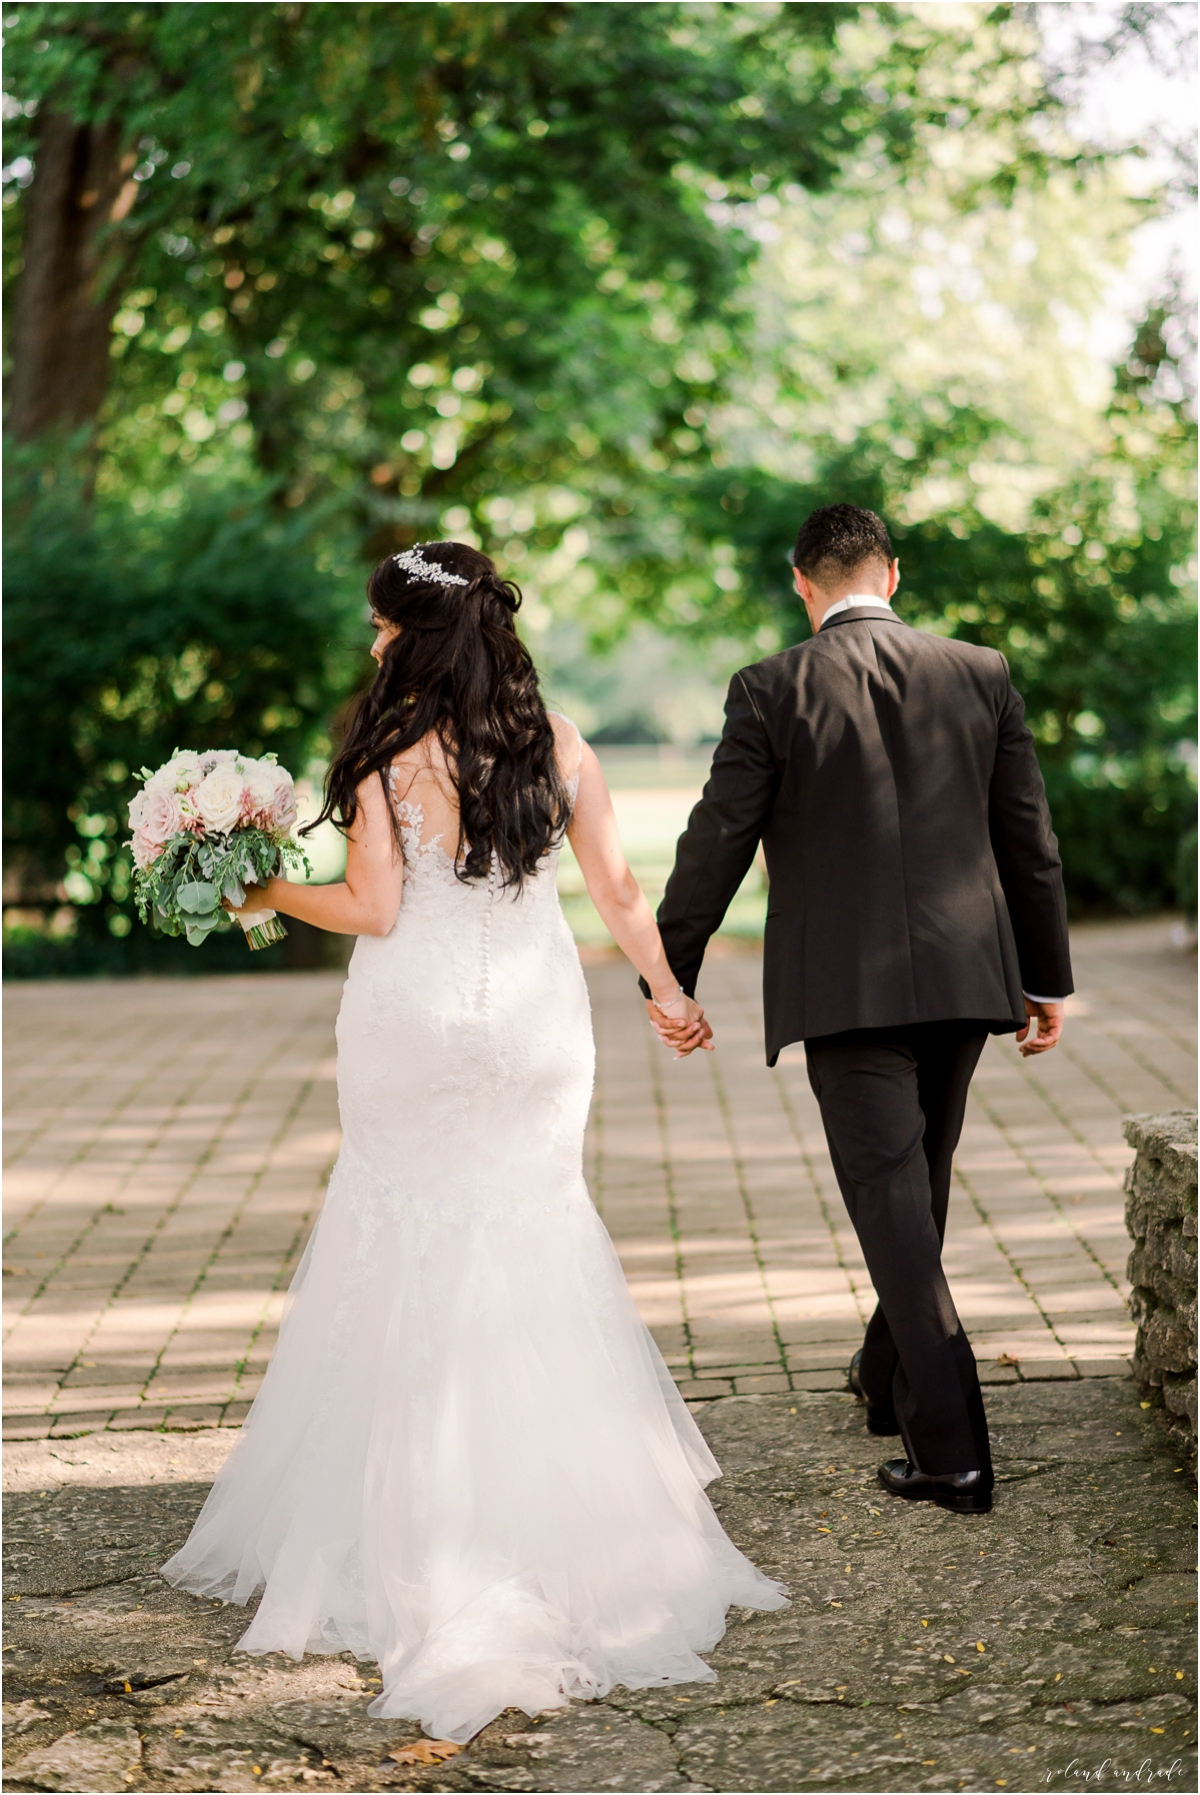 Chicago Wedding Photography, Orchidia Real Wedding, Rosemont Wedding, Best Chicago Photographer61.jpg